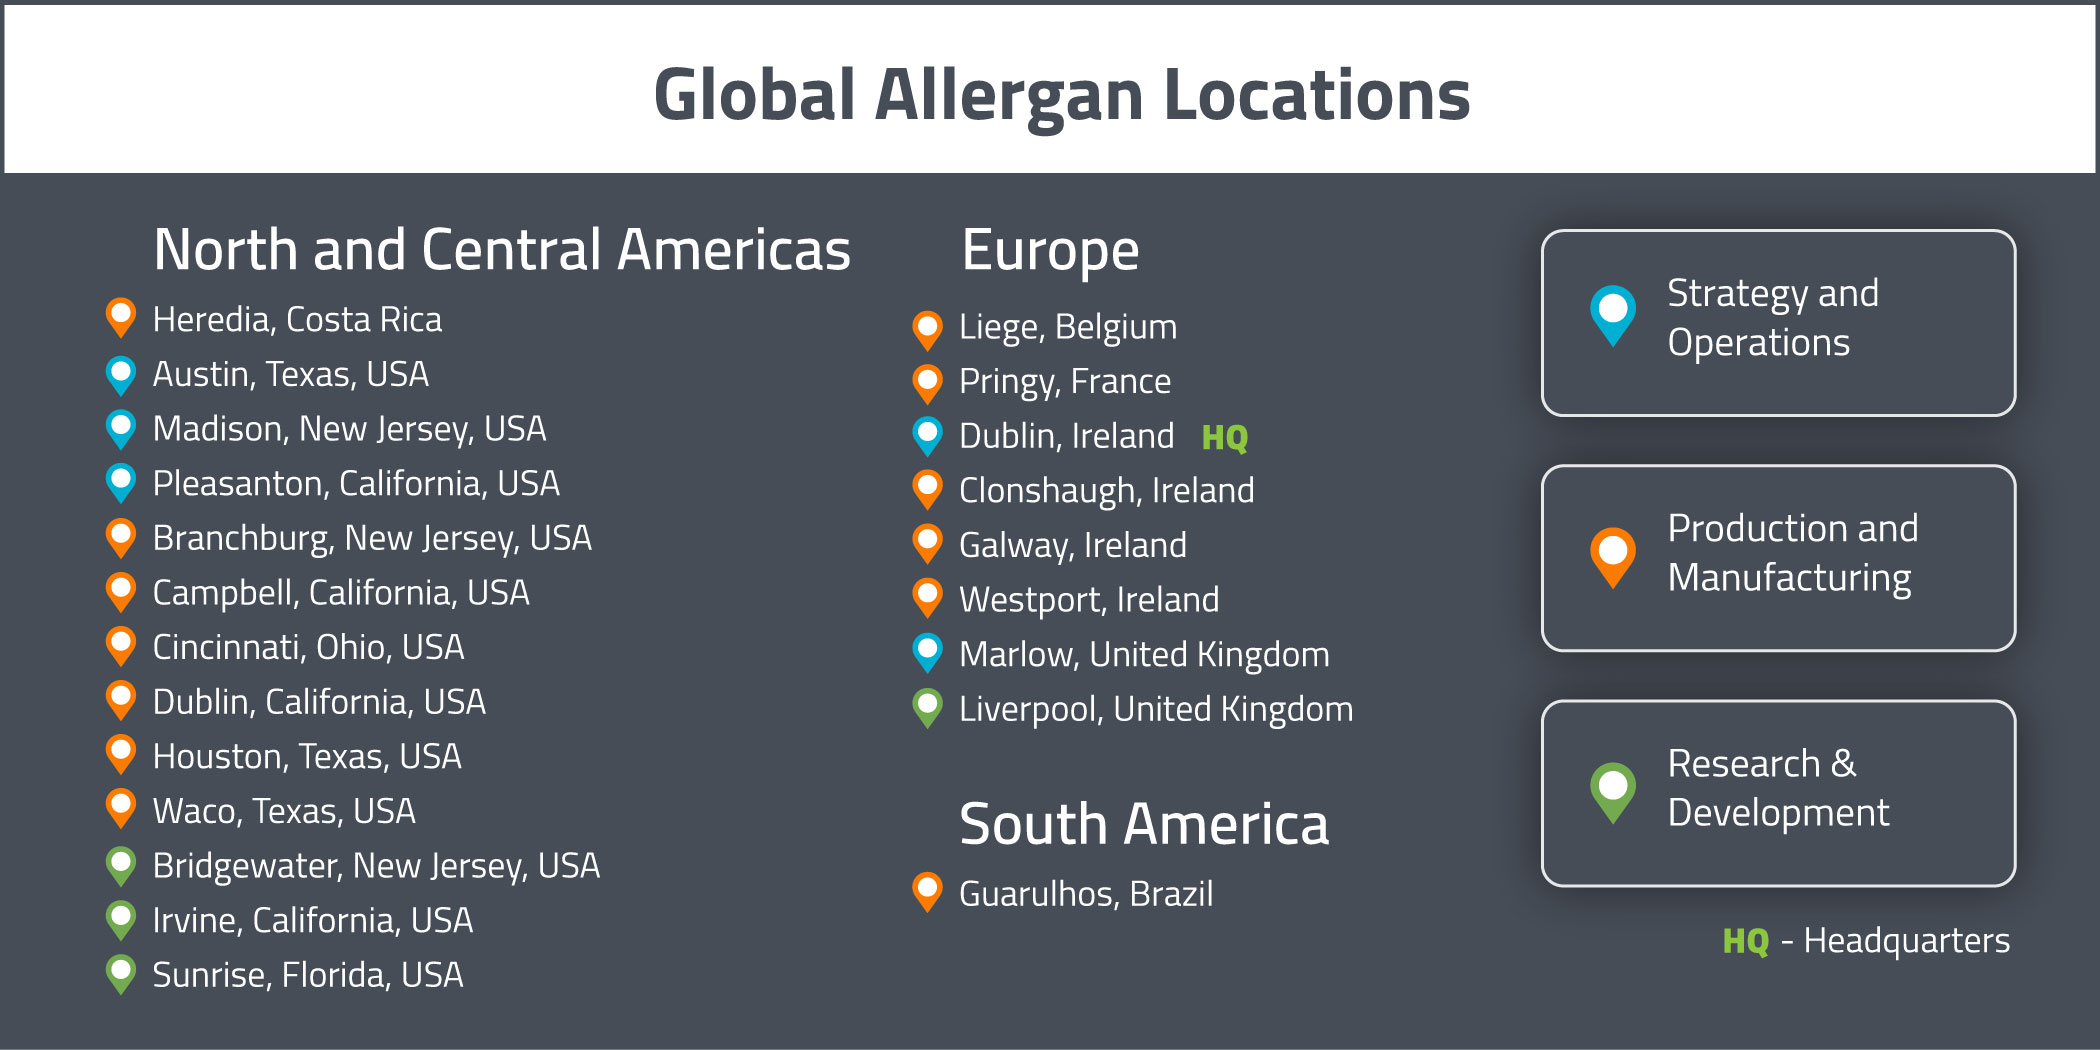 Allergan's global offices and locations